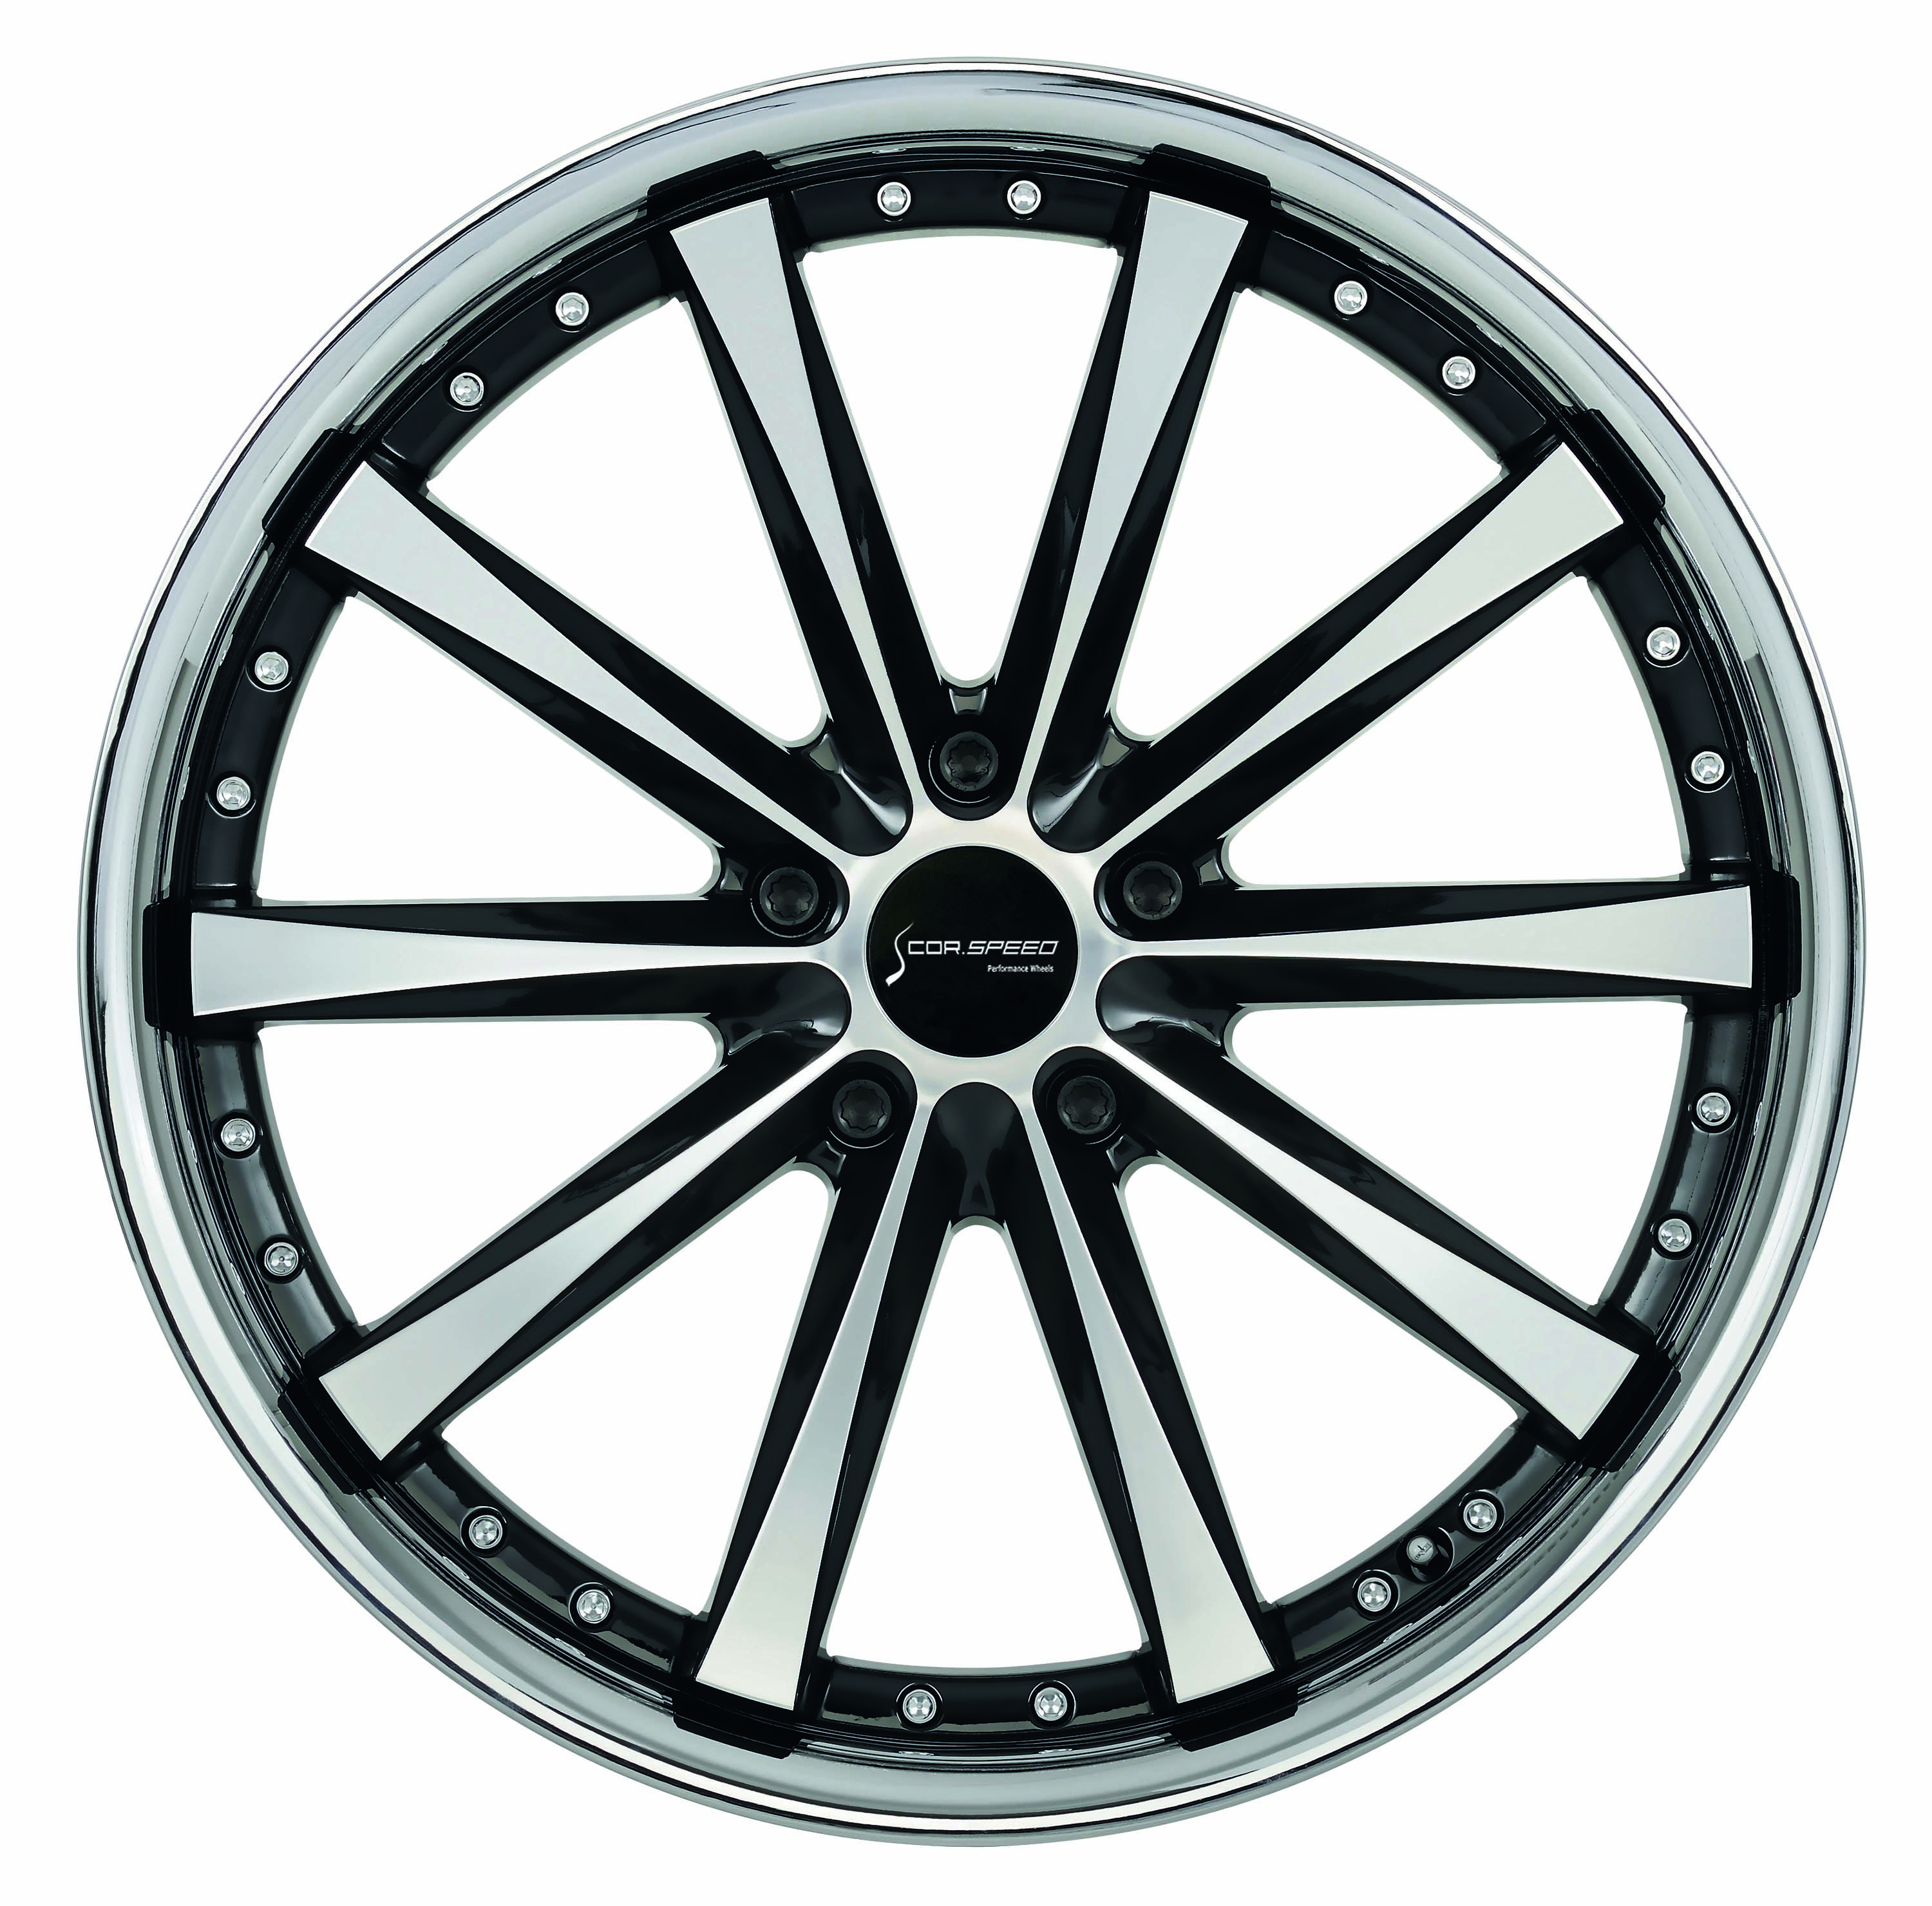 CORSPEED ARROWS Higloss black polished inox lip - 10x20 / 5x112 / ET38, RCARR10048R/GB-P_I22028